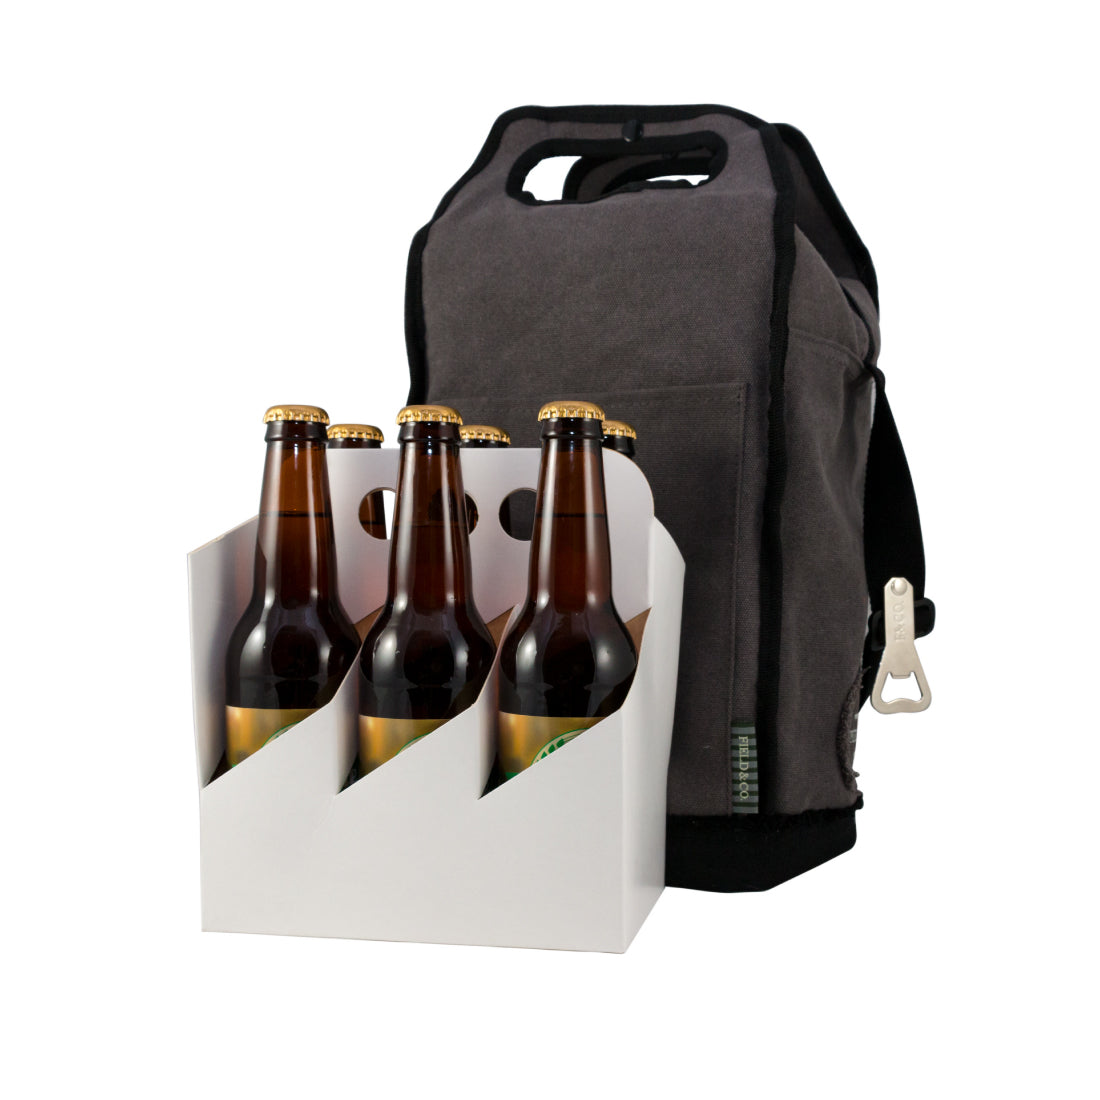 Craft Lager 4.3% - 6 pack & Cooler Bag